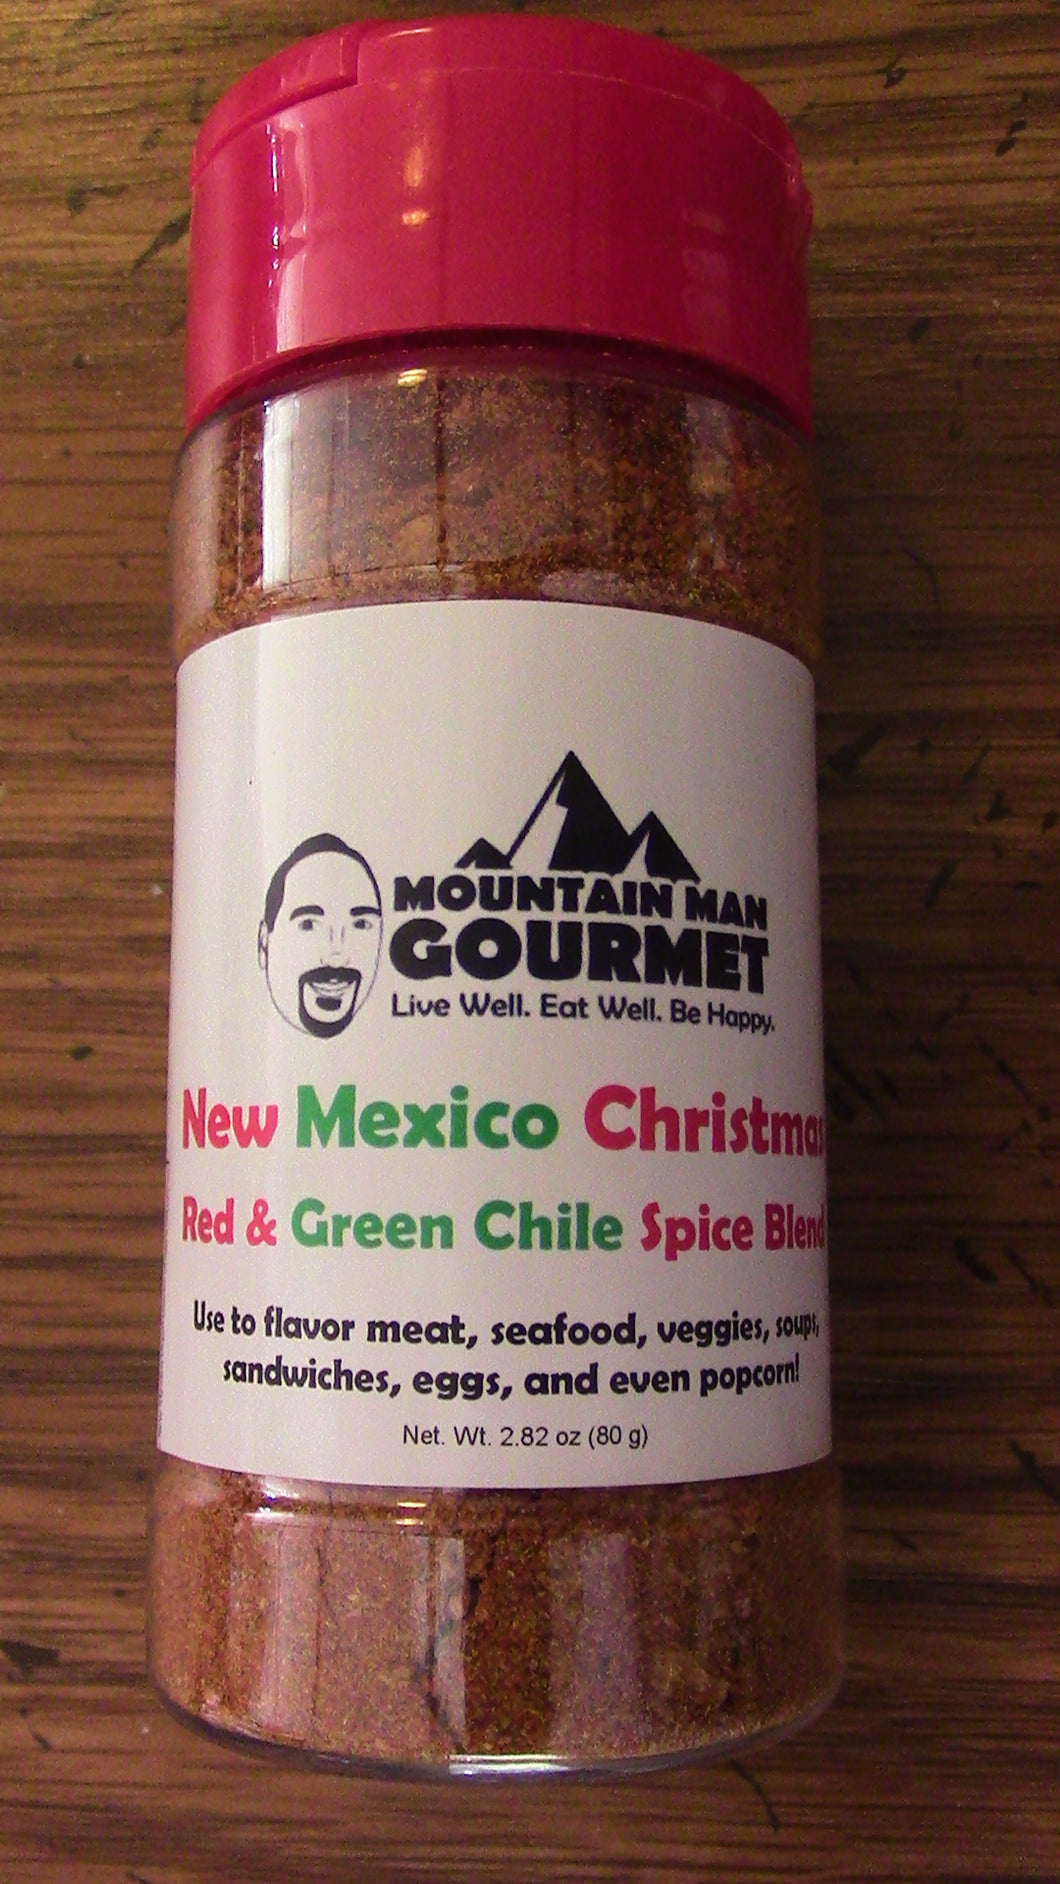 New Mexico Christmas Spice Blend